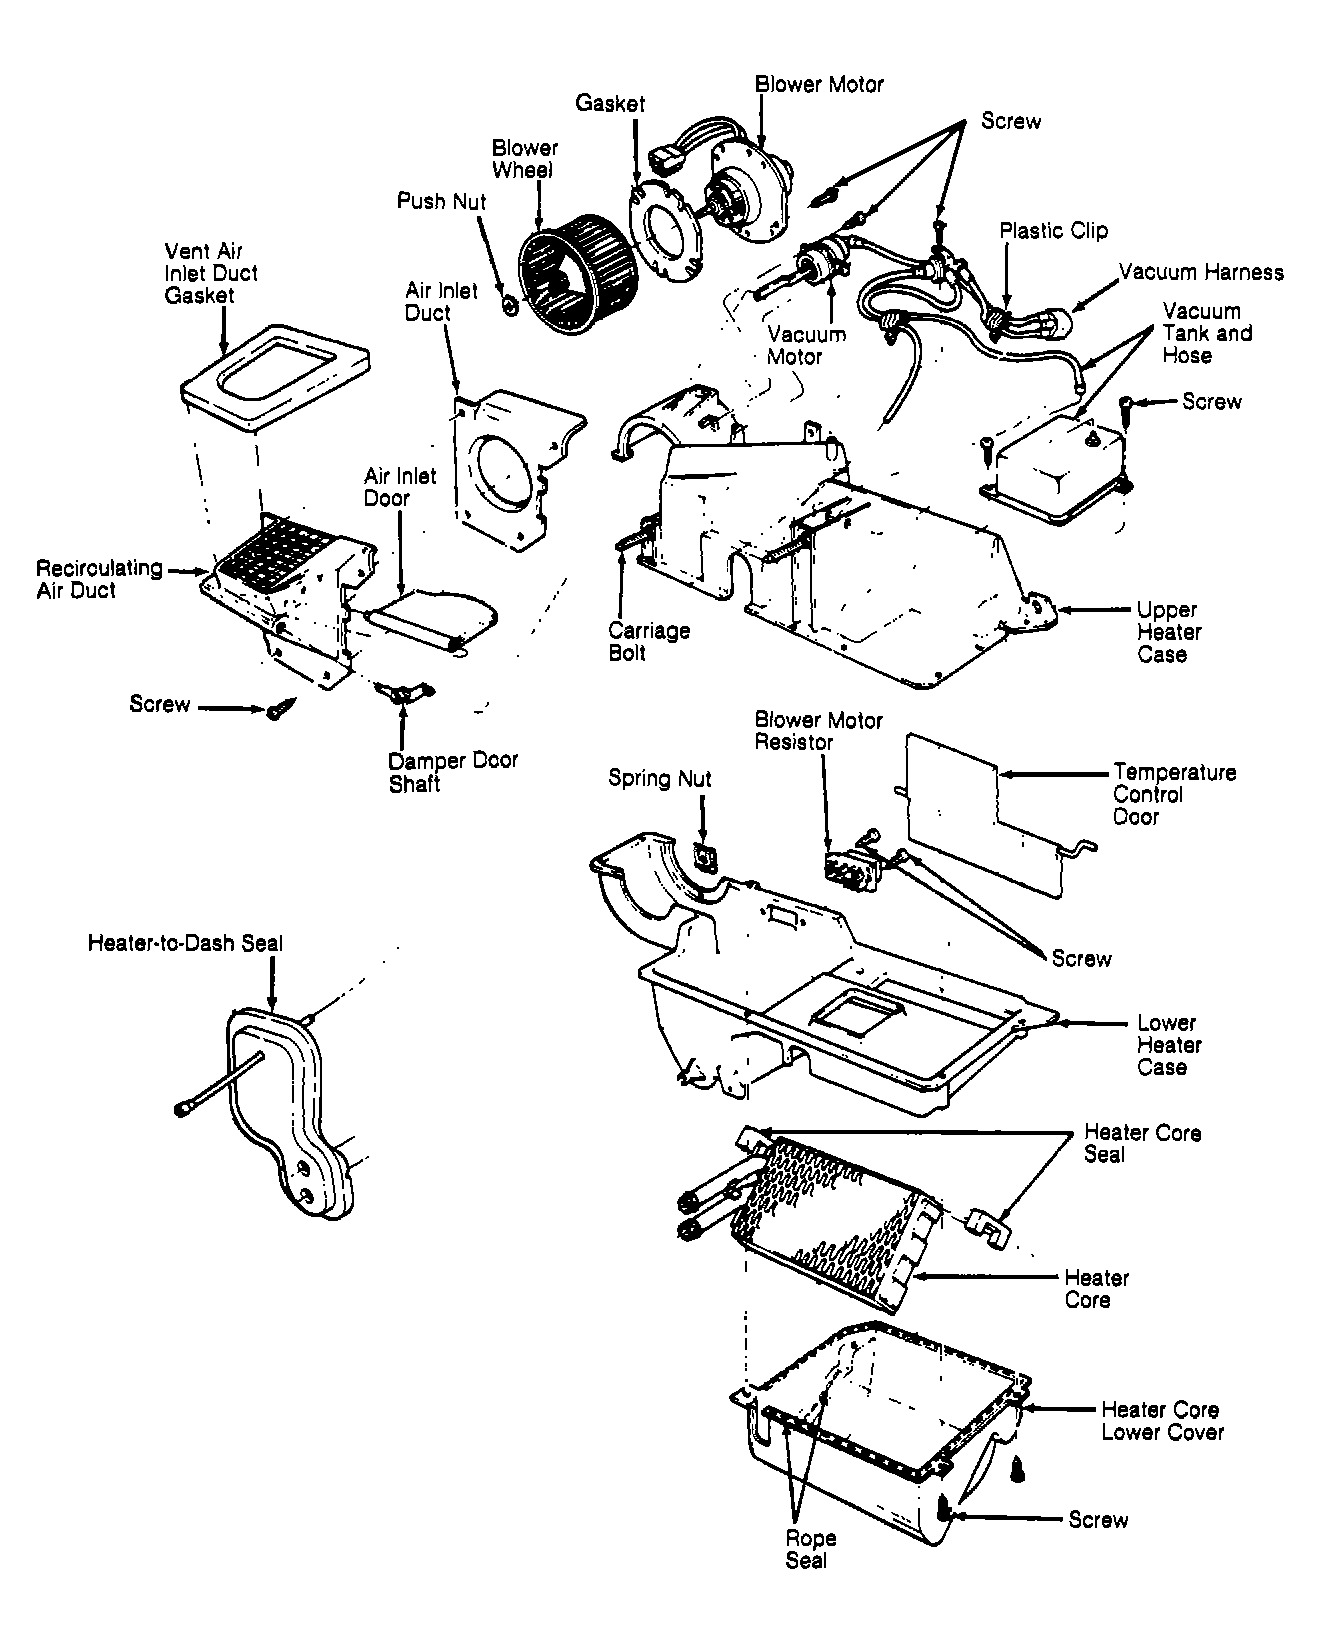 Ford tempo turbo wiring diagrams